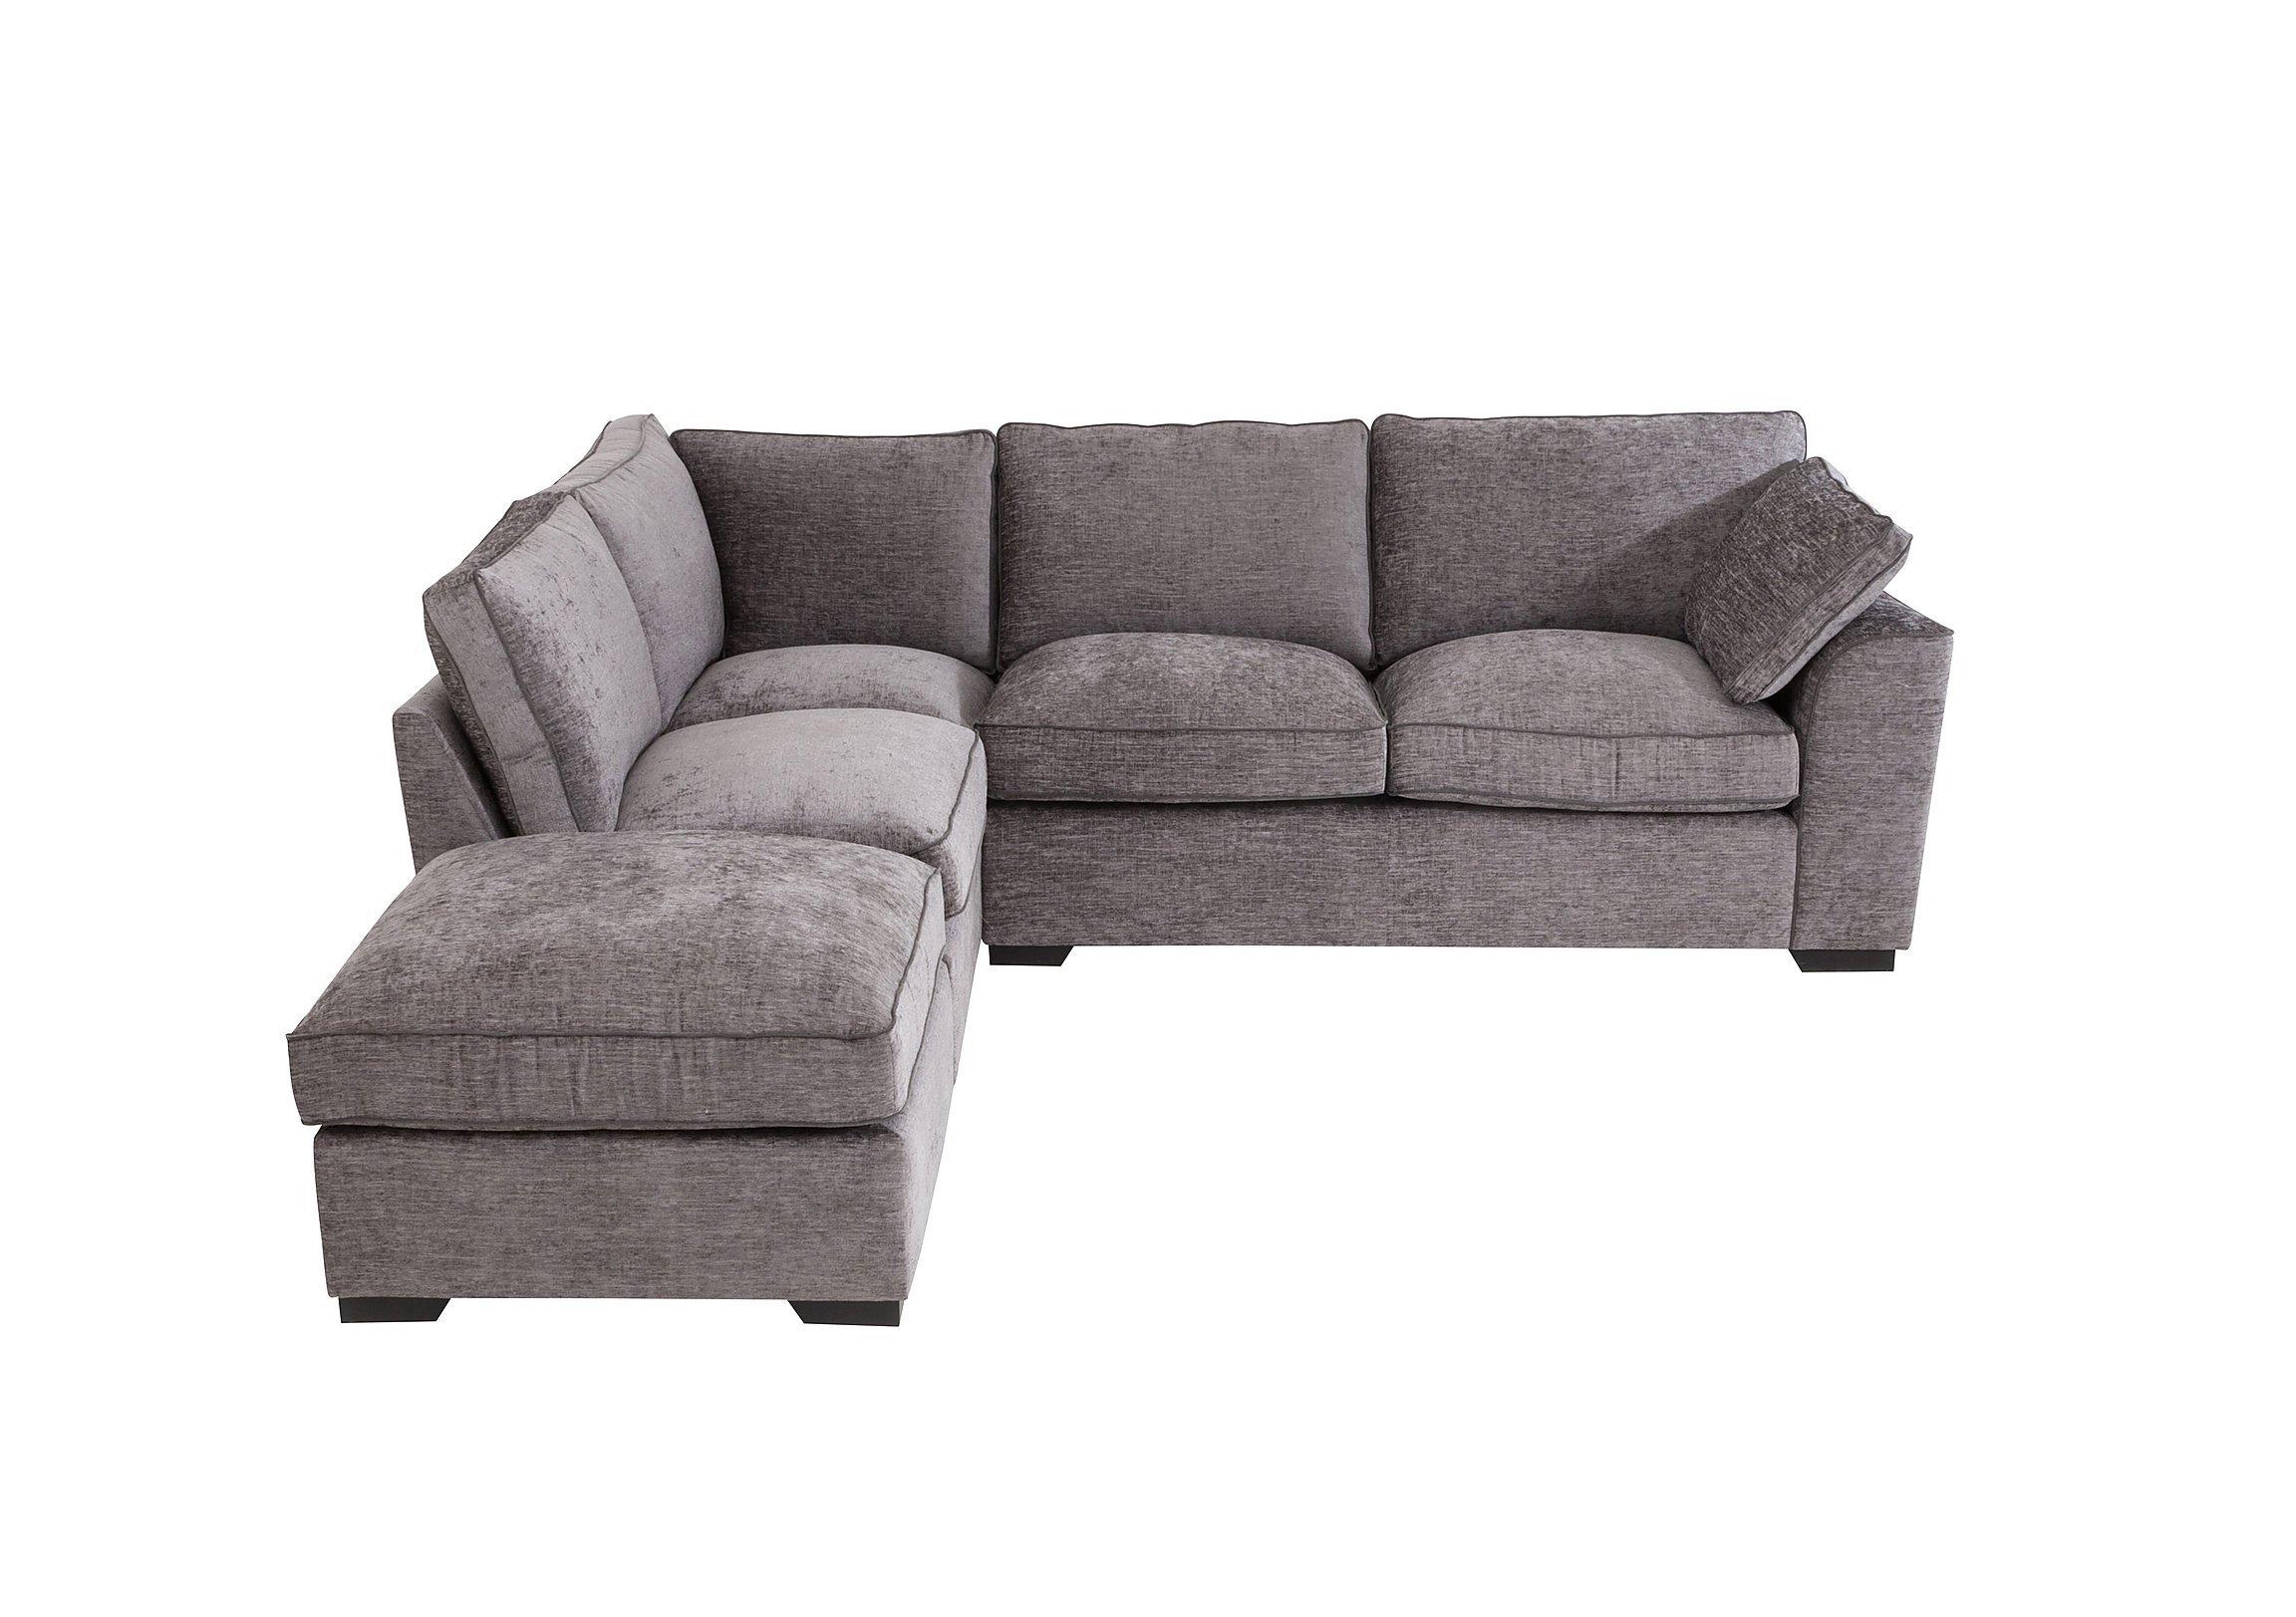 tivoli corner editions oak left weave chaise agateblue couch swoon hand sofa seater small desktop two